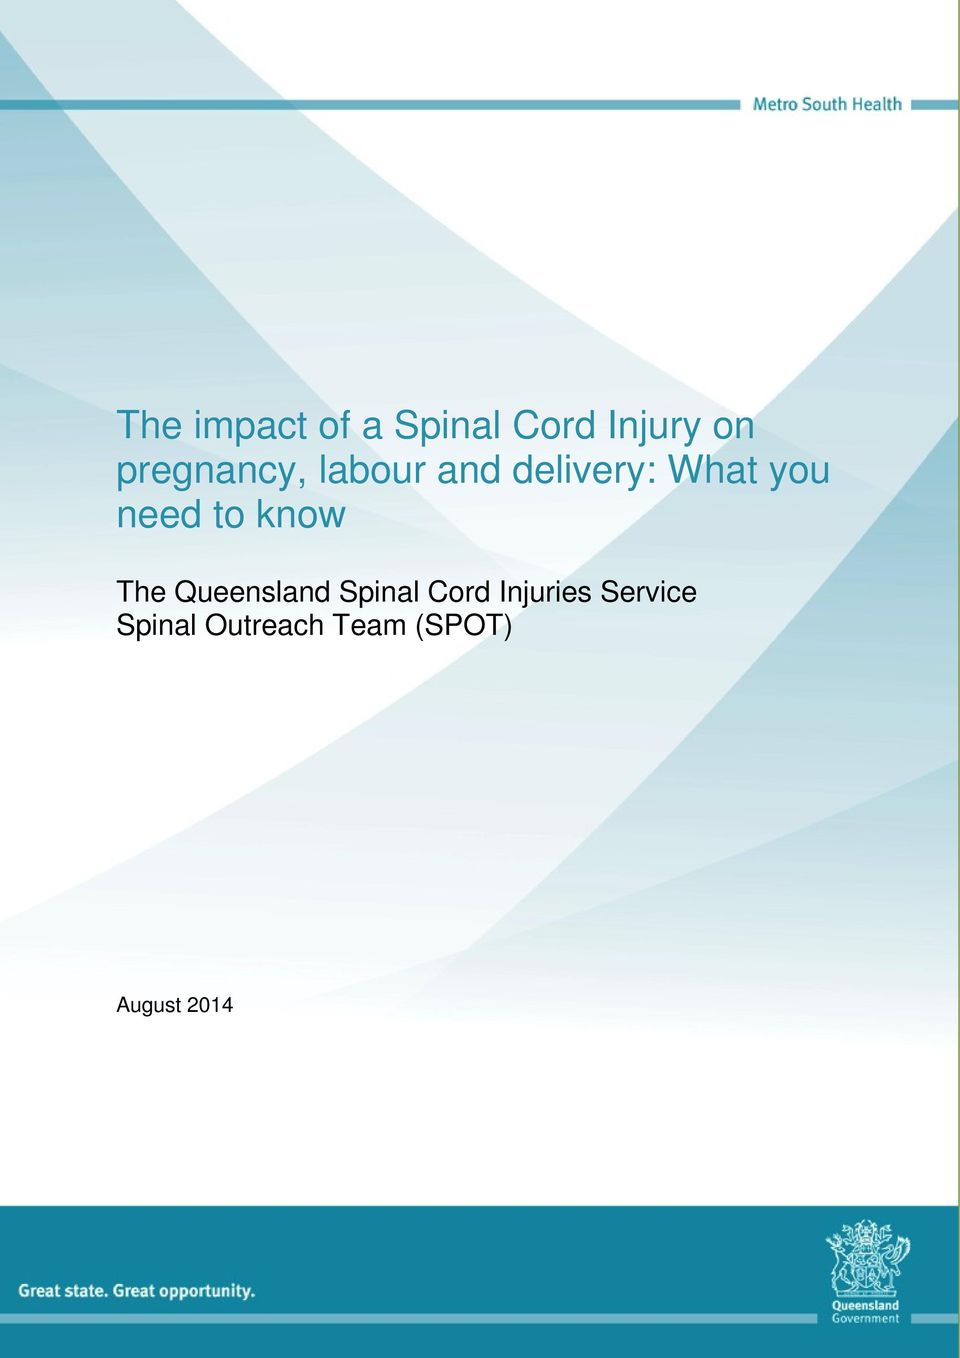 need to know The Queensland Spinal Cord